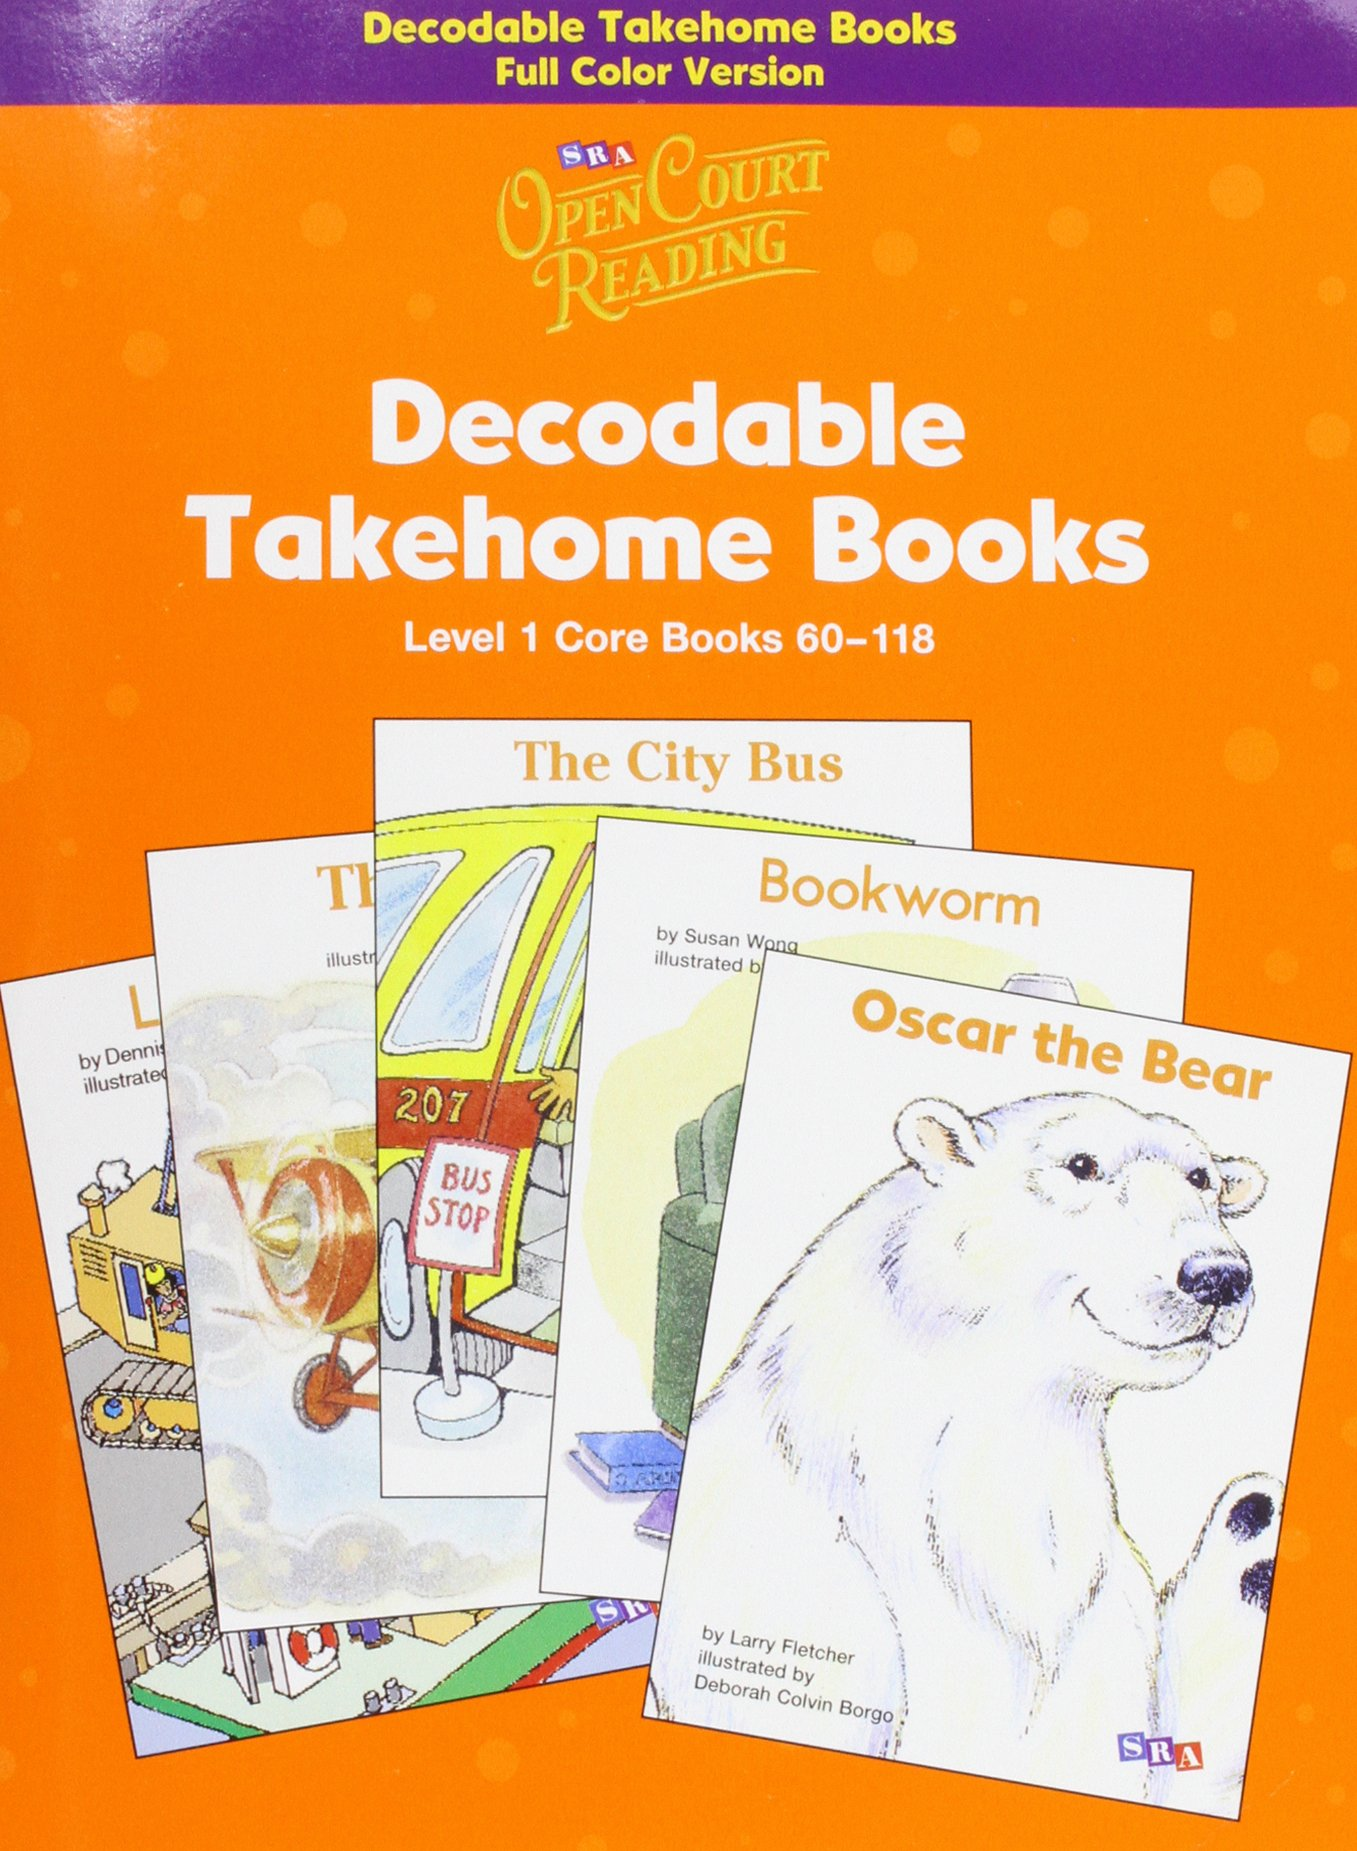 graphic about Free Printable Decodable Books for Kindergarten called Open up Courtroom Reading through Decodable Takehome Guides: Stage 1 Main